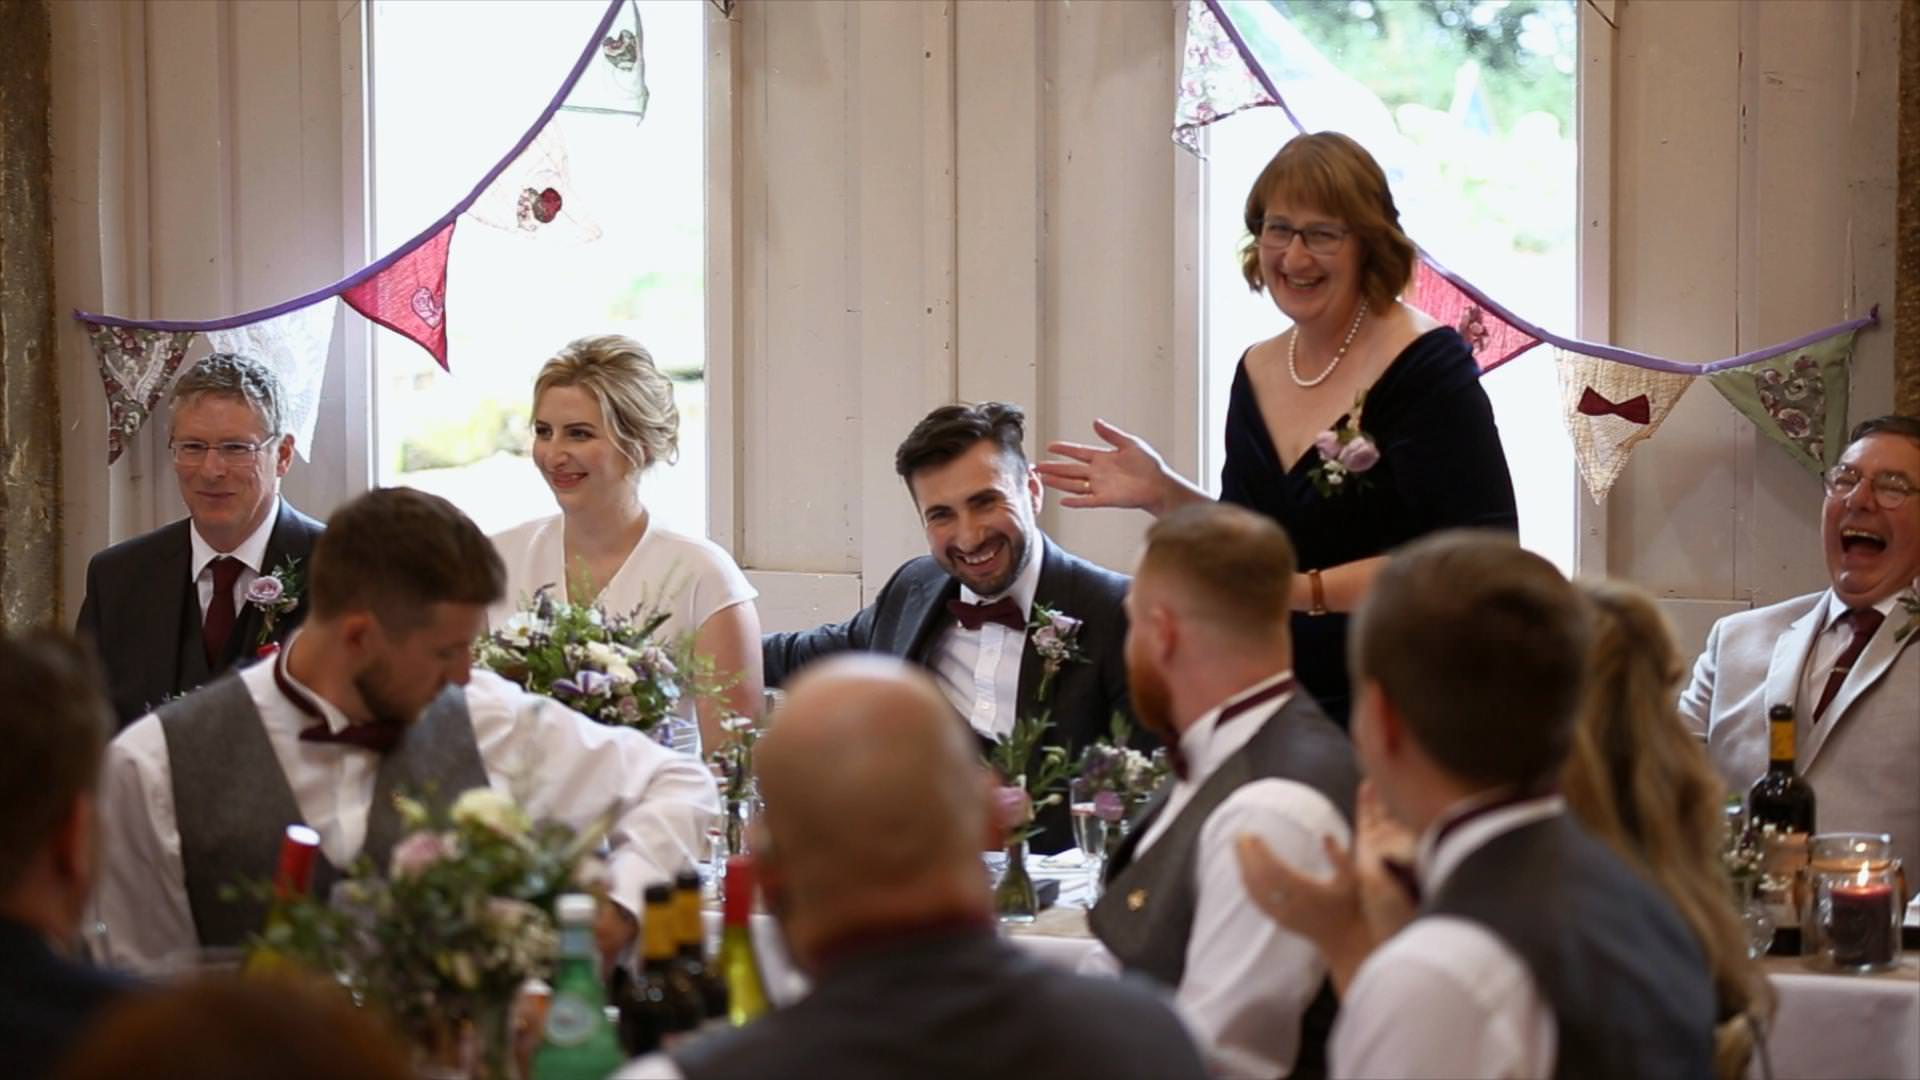 mother of the bride delivers a funny speech